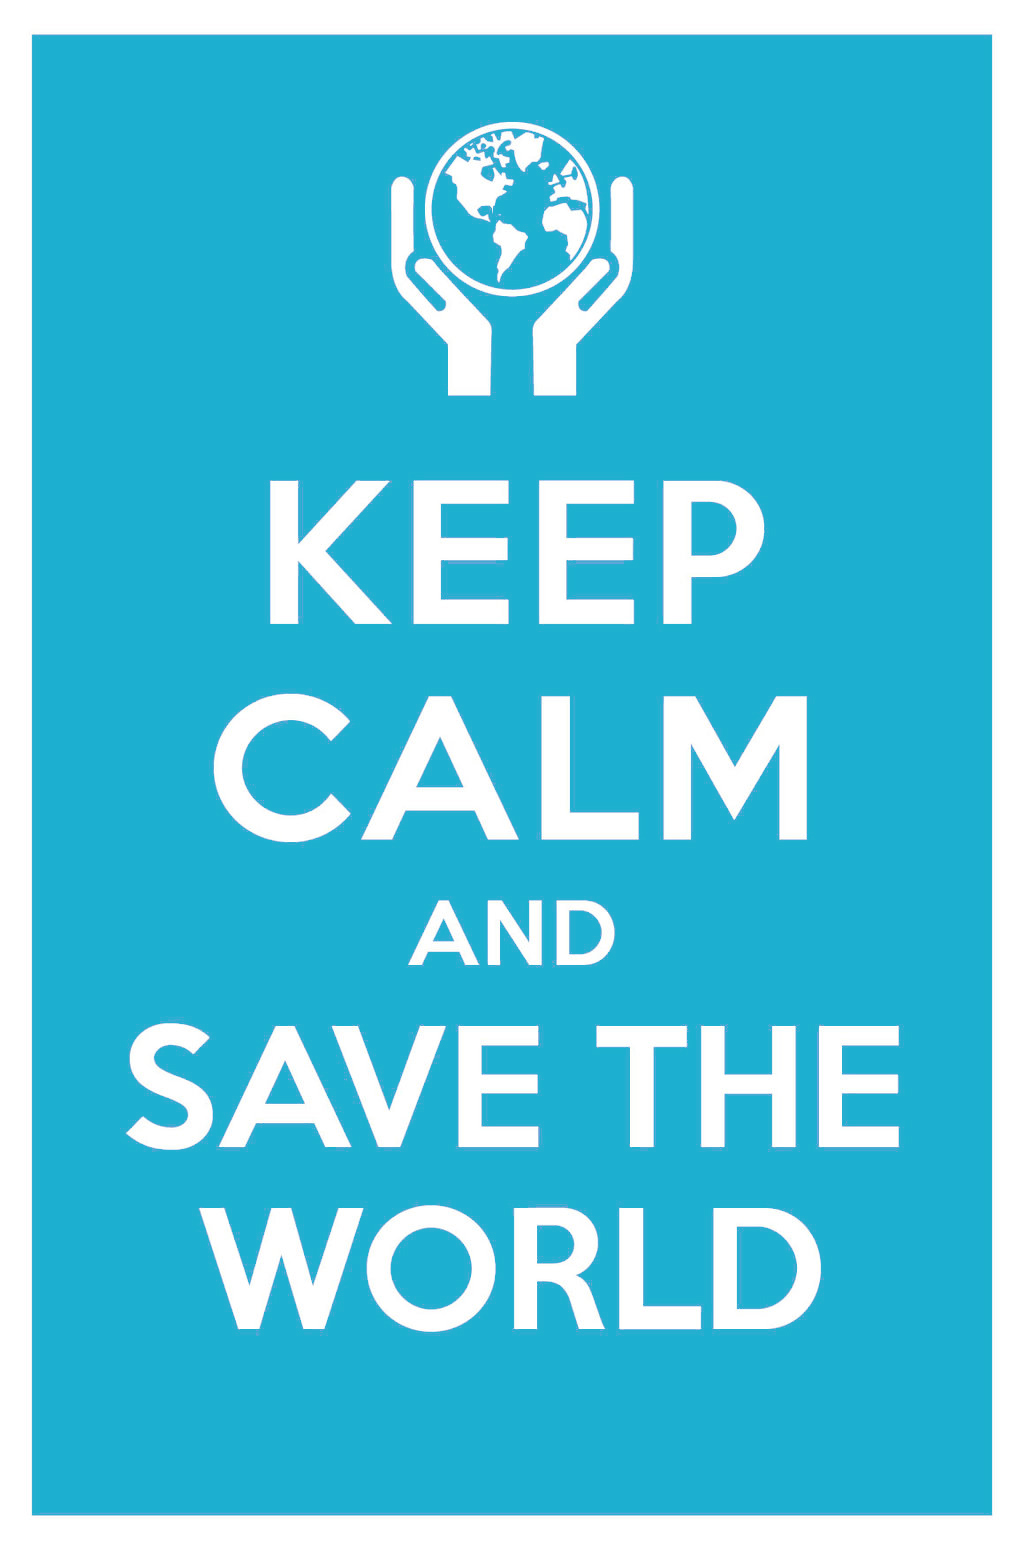 keep_calm_and_save_the_world_by_manishmansinh-d4k9l4g.jpg